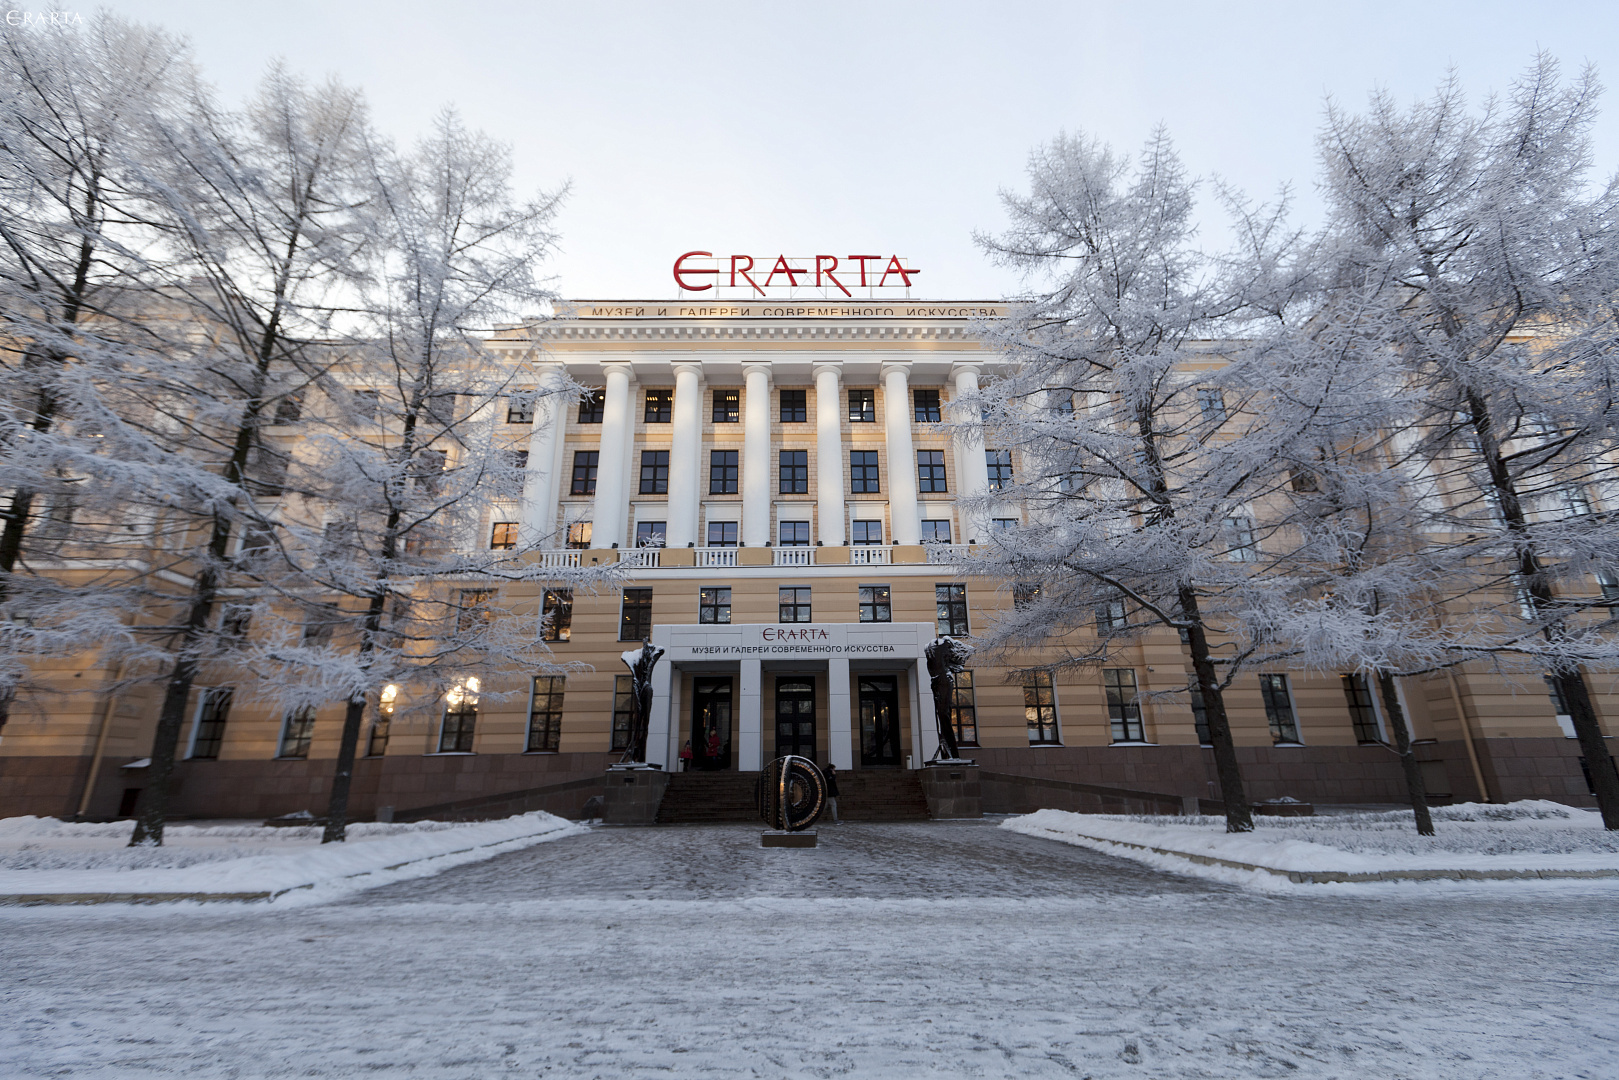 Erarta Museum Opening Hours During the Winter Holidays